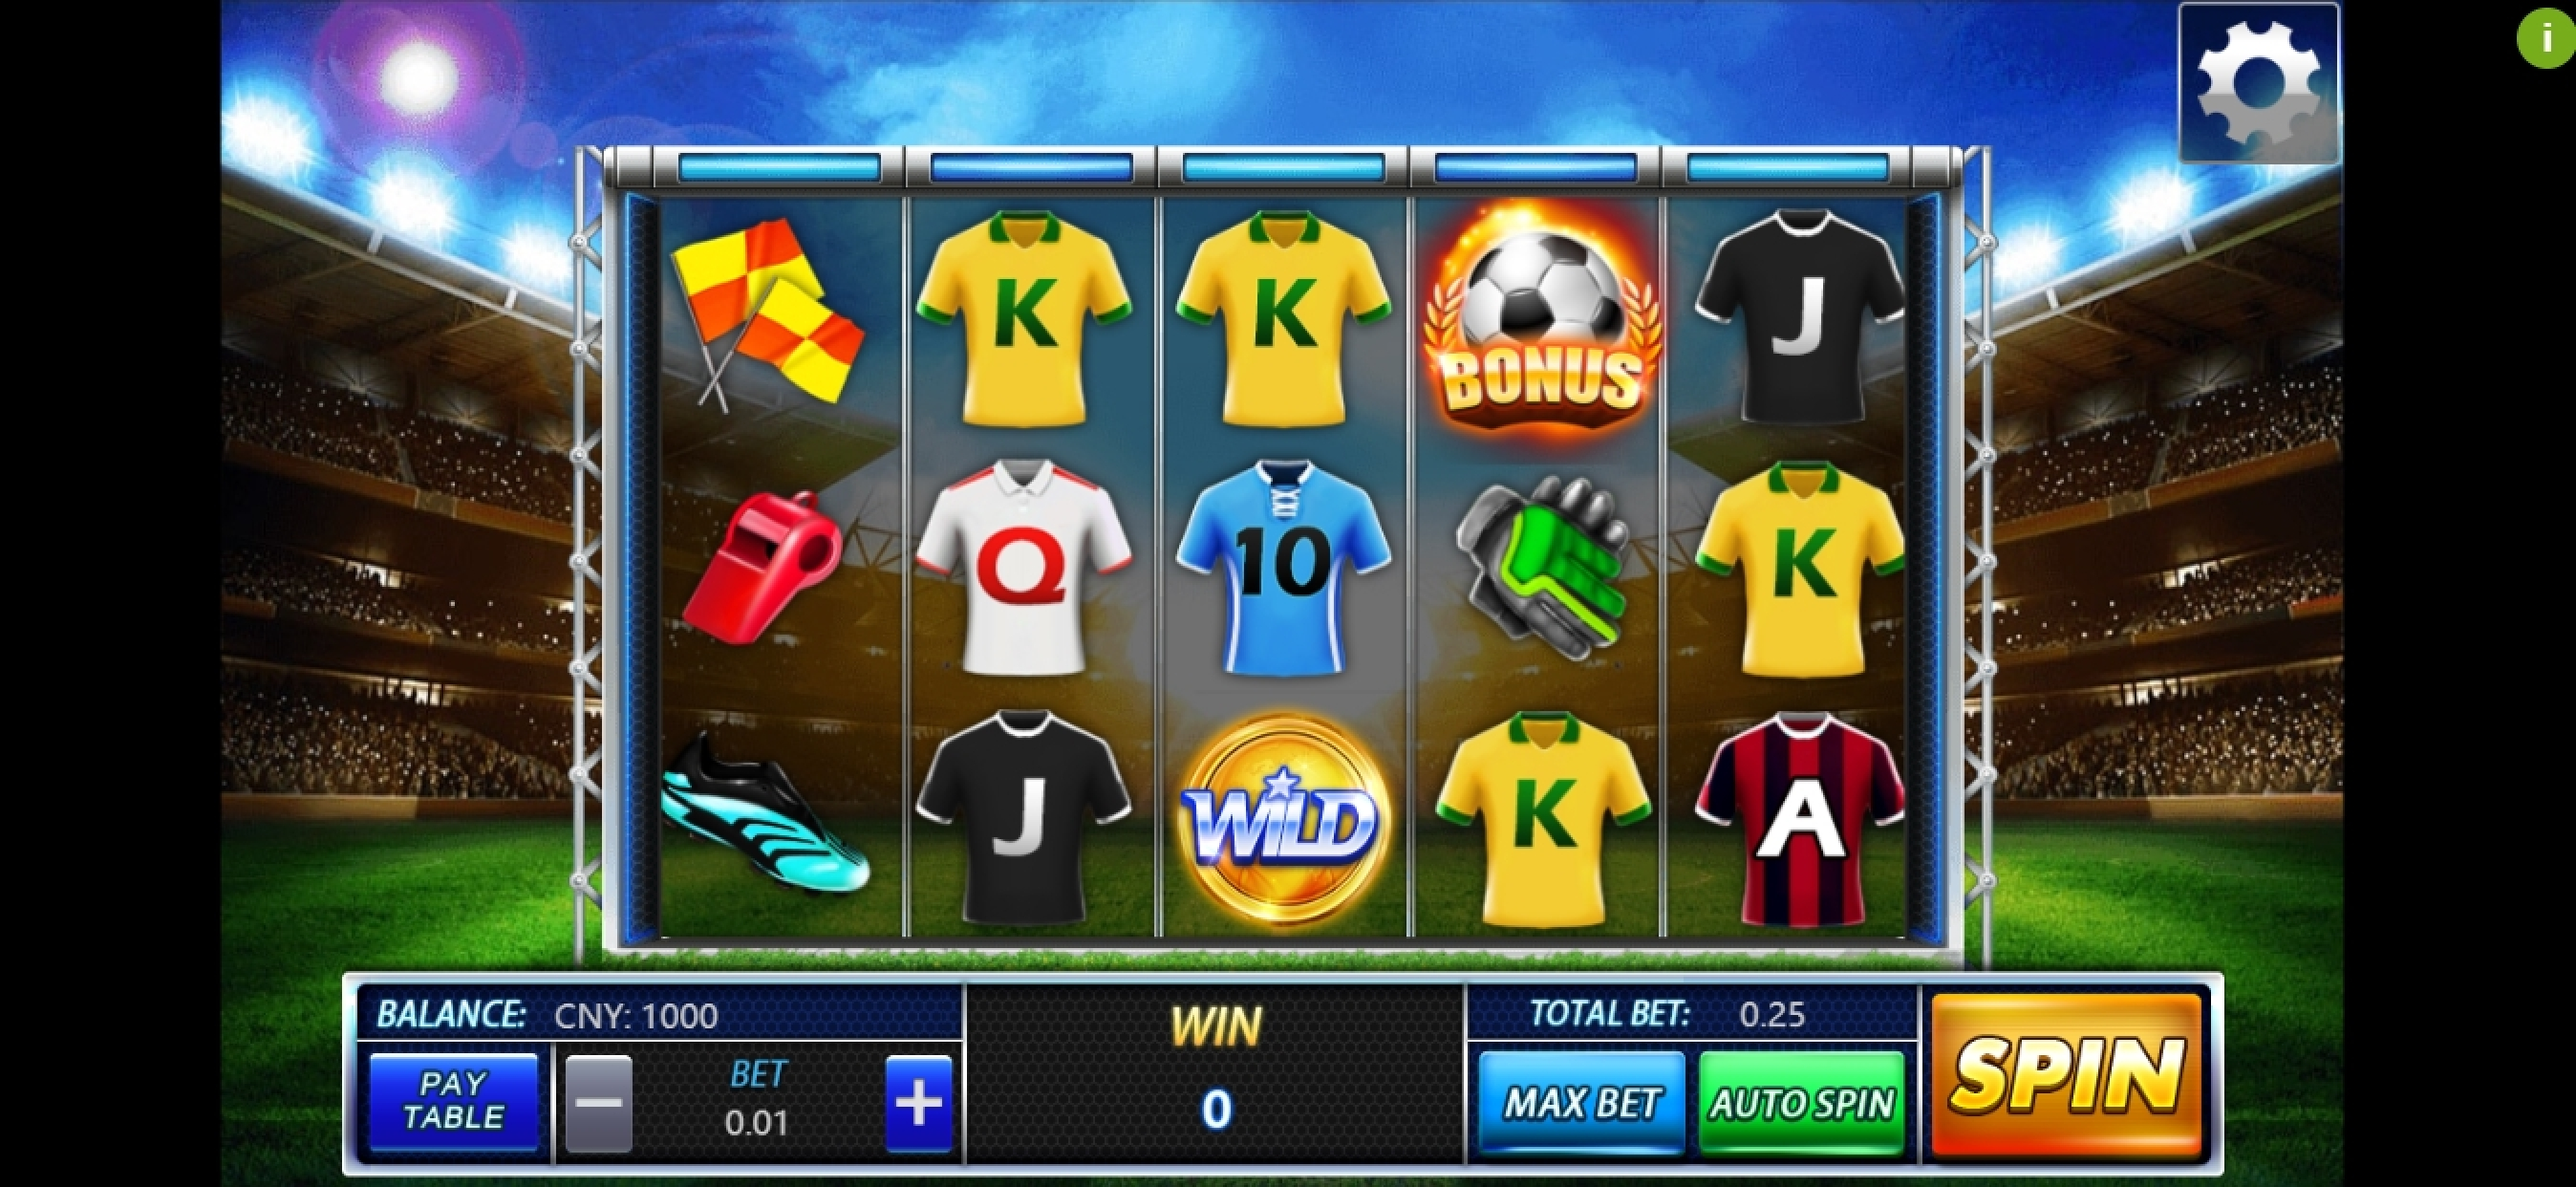 Win Money in Football Frenzy (Aiwin Games) Free Slot Game by Aiwin Games